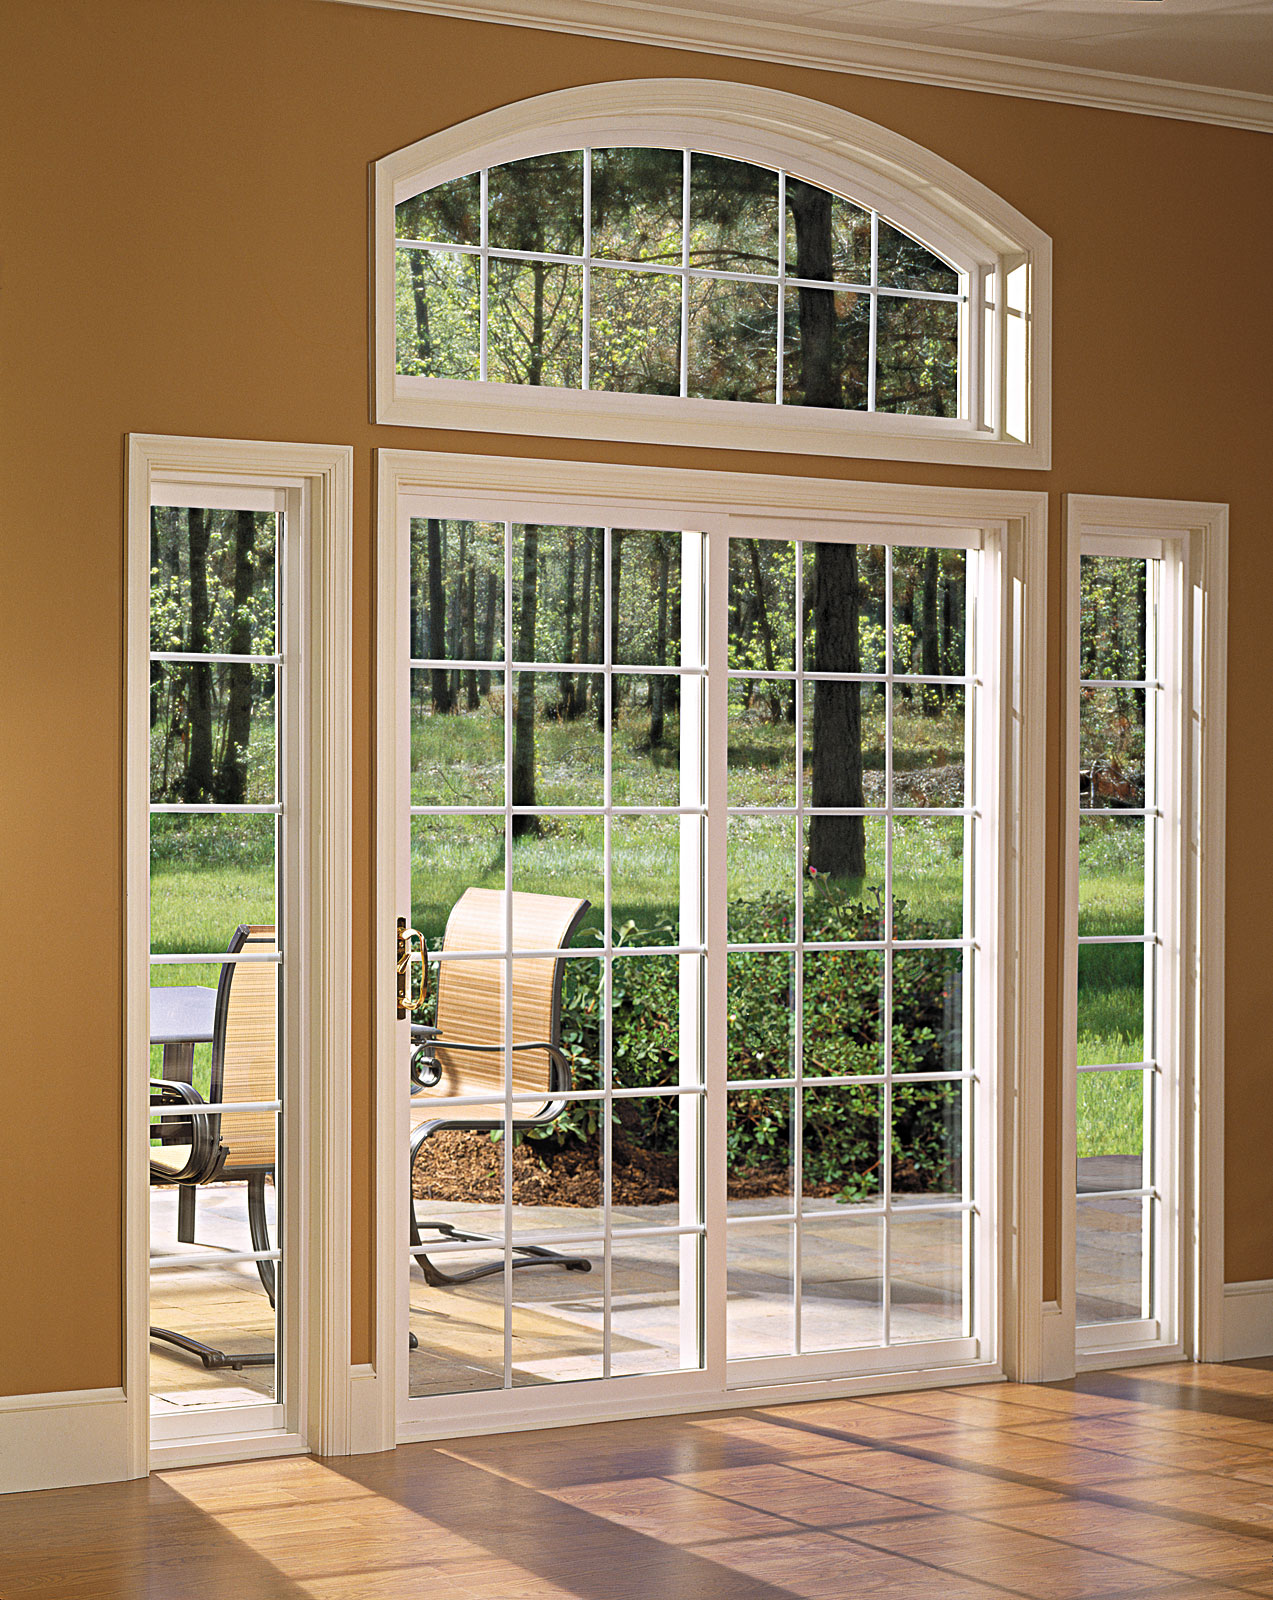 Windows and Door Replacement & Windows and Door Replacement u2013 Long Island Building Experts pezcame.com